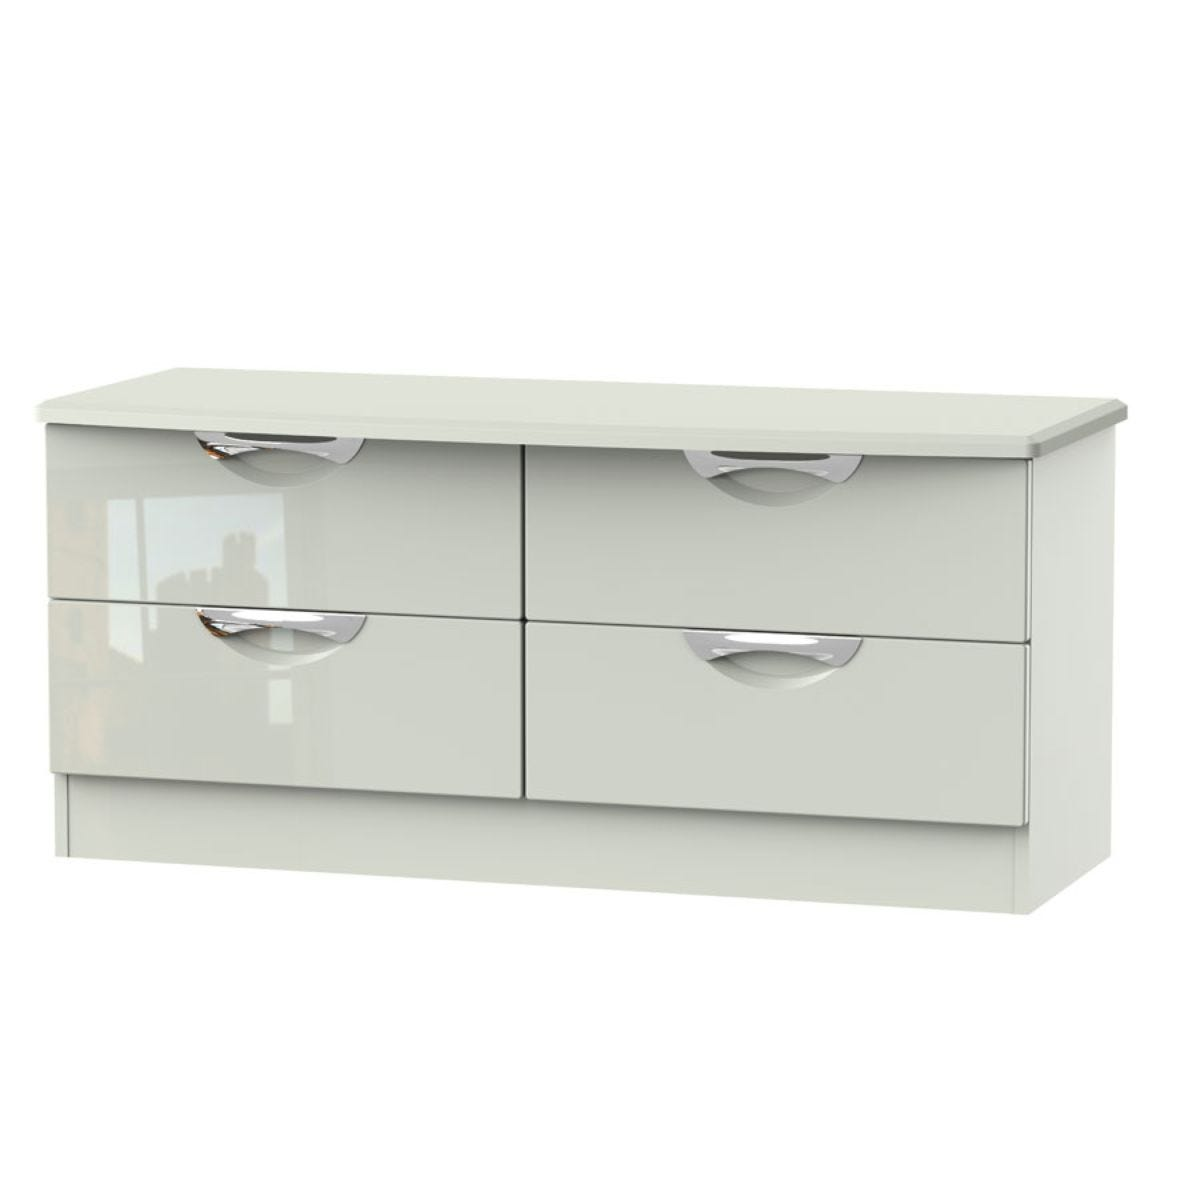 Indices 4-Drawer Double Chest of Drawers - White/Grey